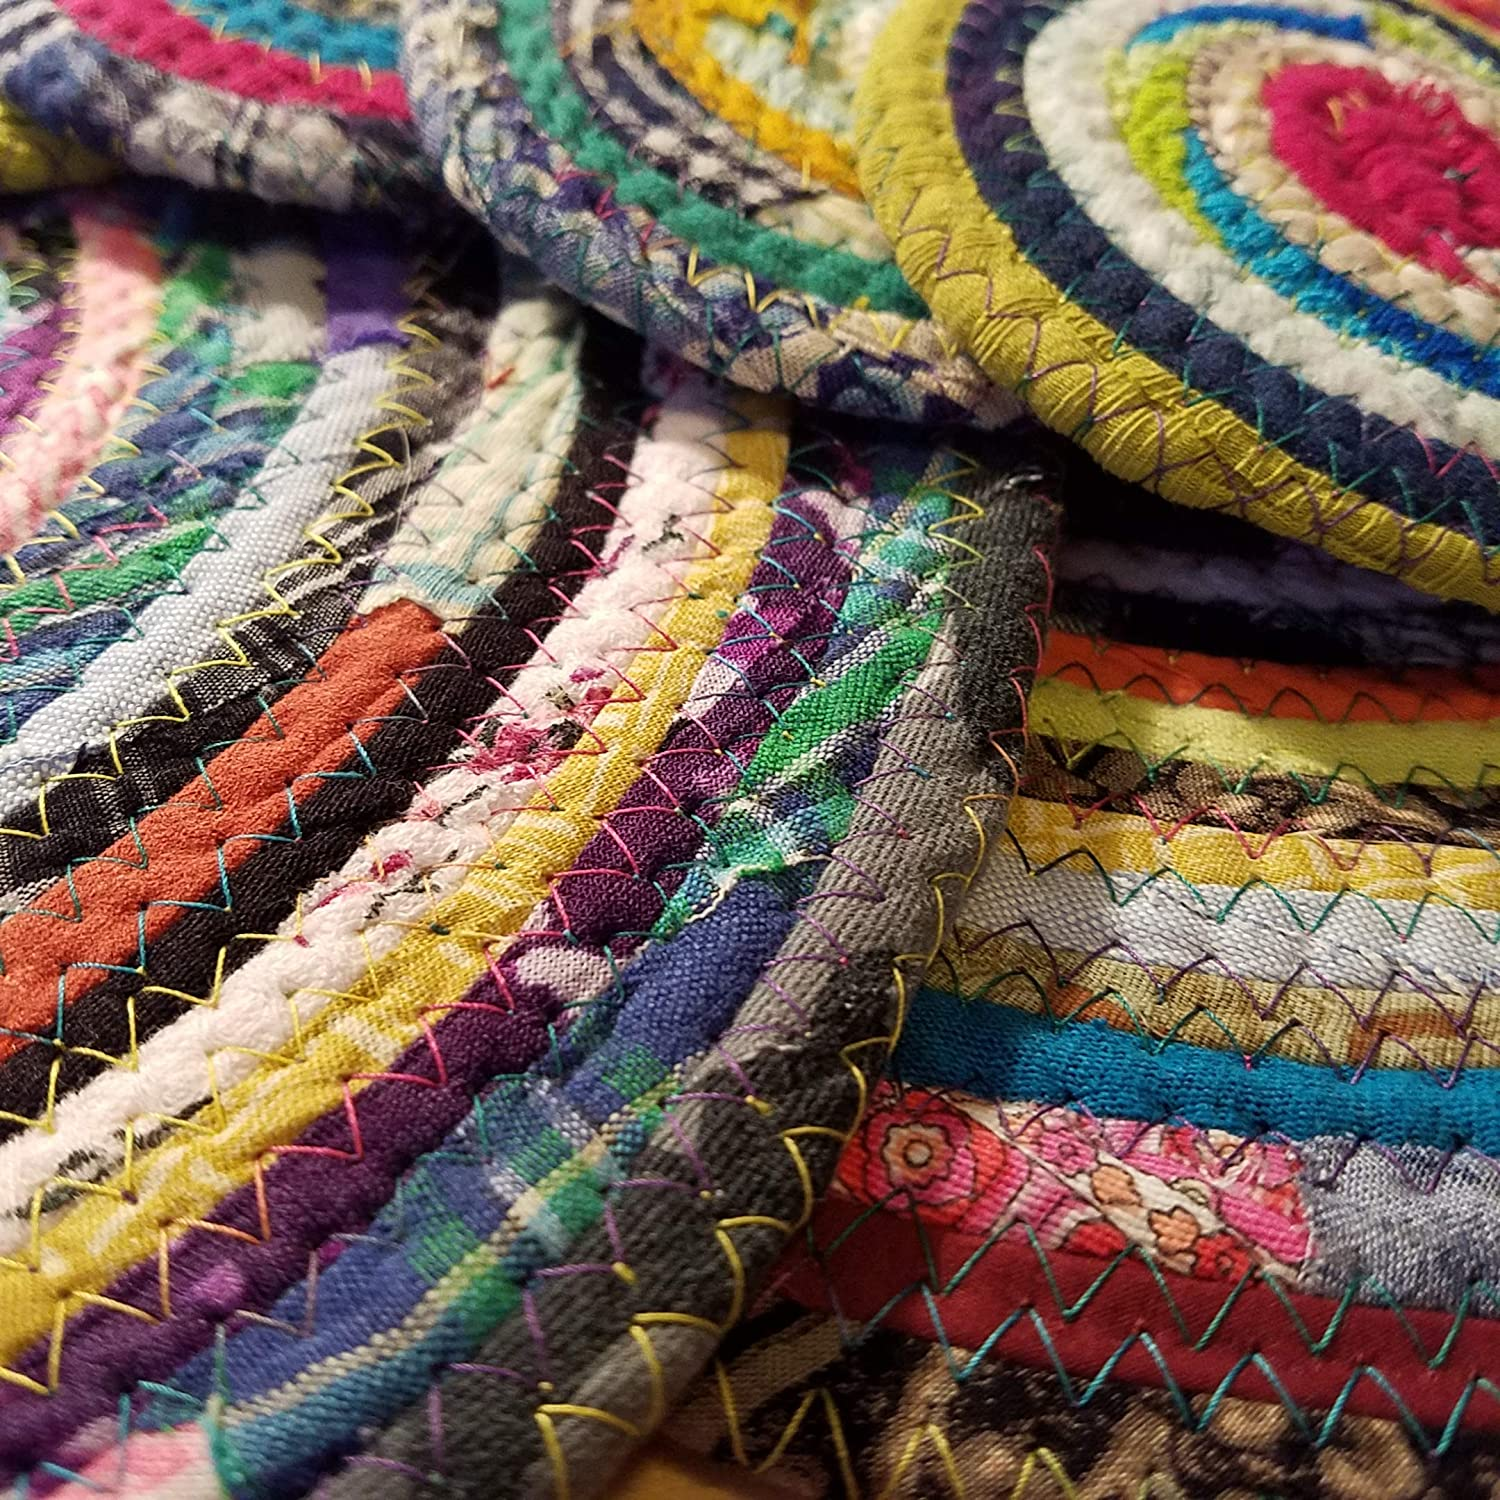 Upcycled Braided Rug Style Handmade Fabric Bohemian Cloth Mat 14 Multicolor Jewels Fabric Table Mat Qty: 1 Placemat Eco-Conscious